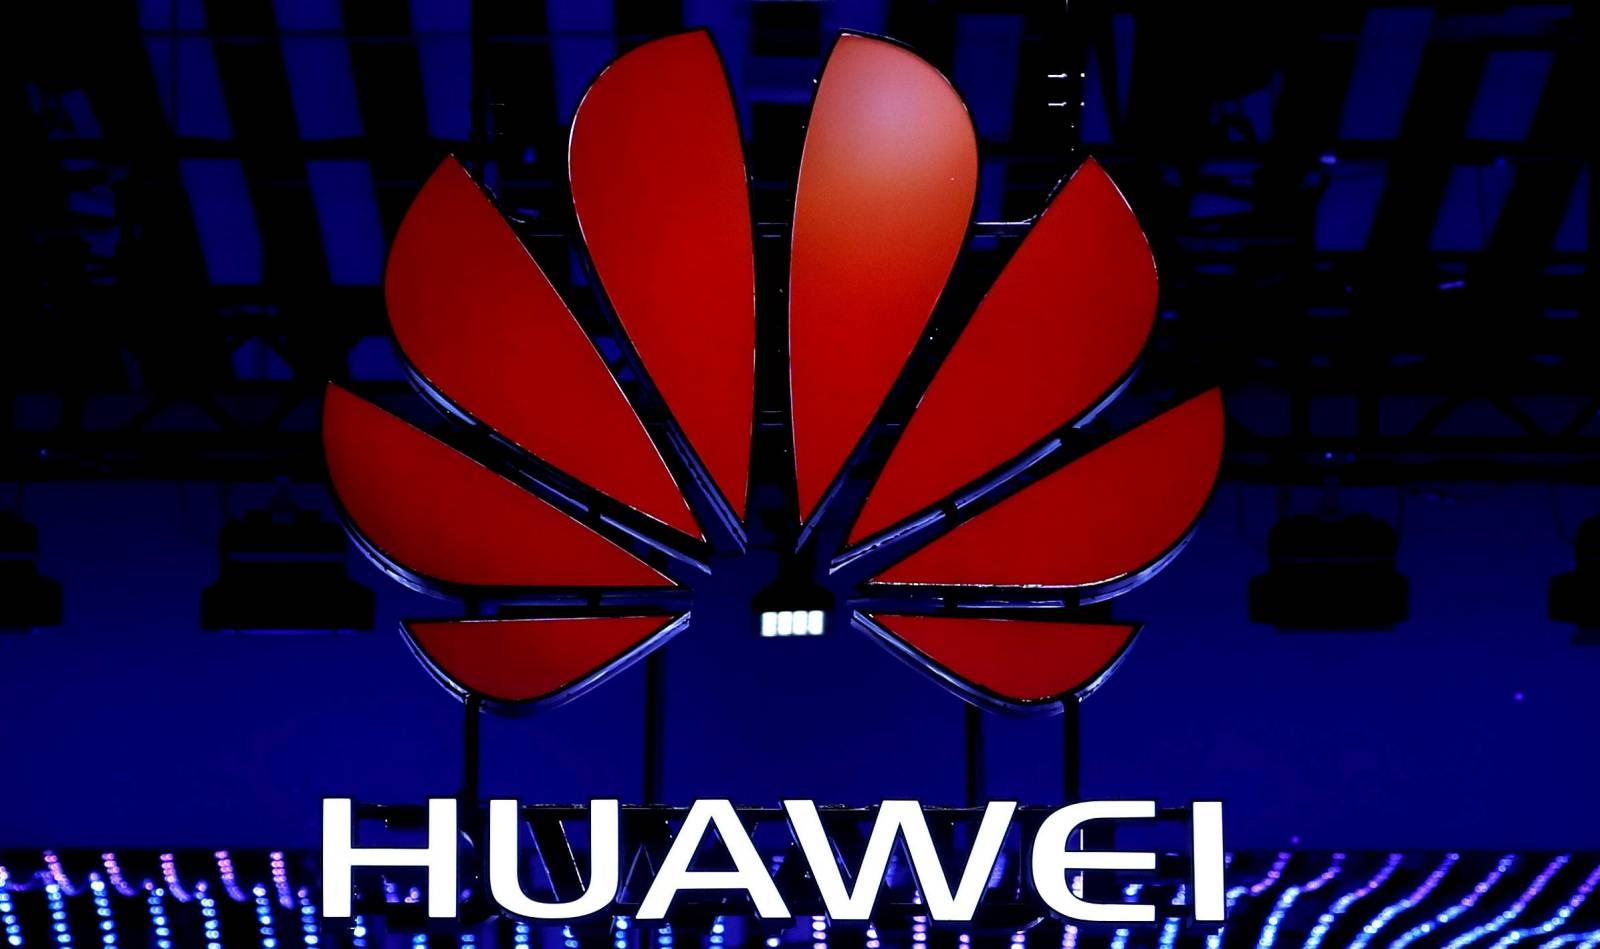 huawei scadere